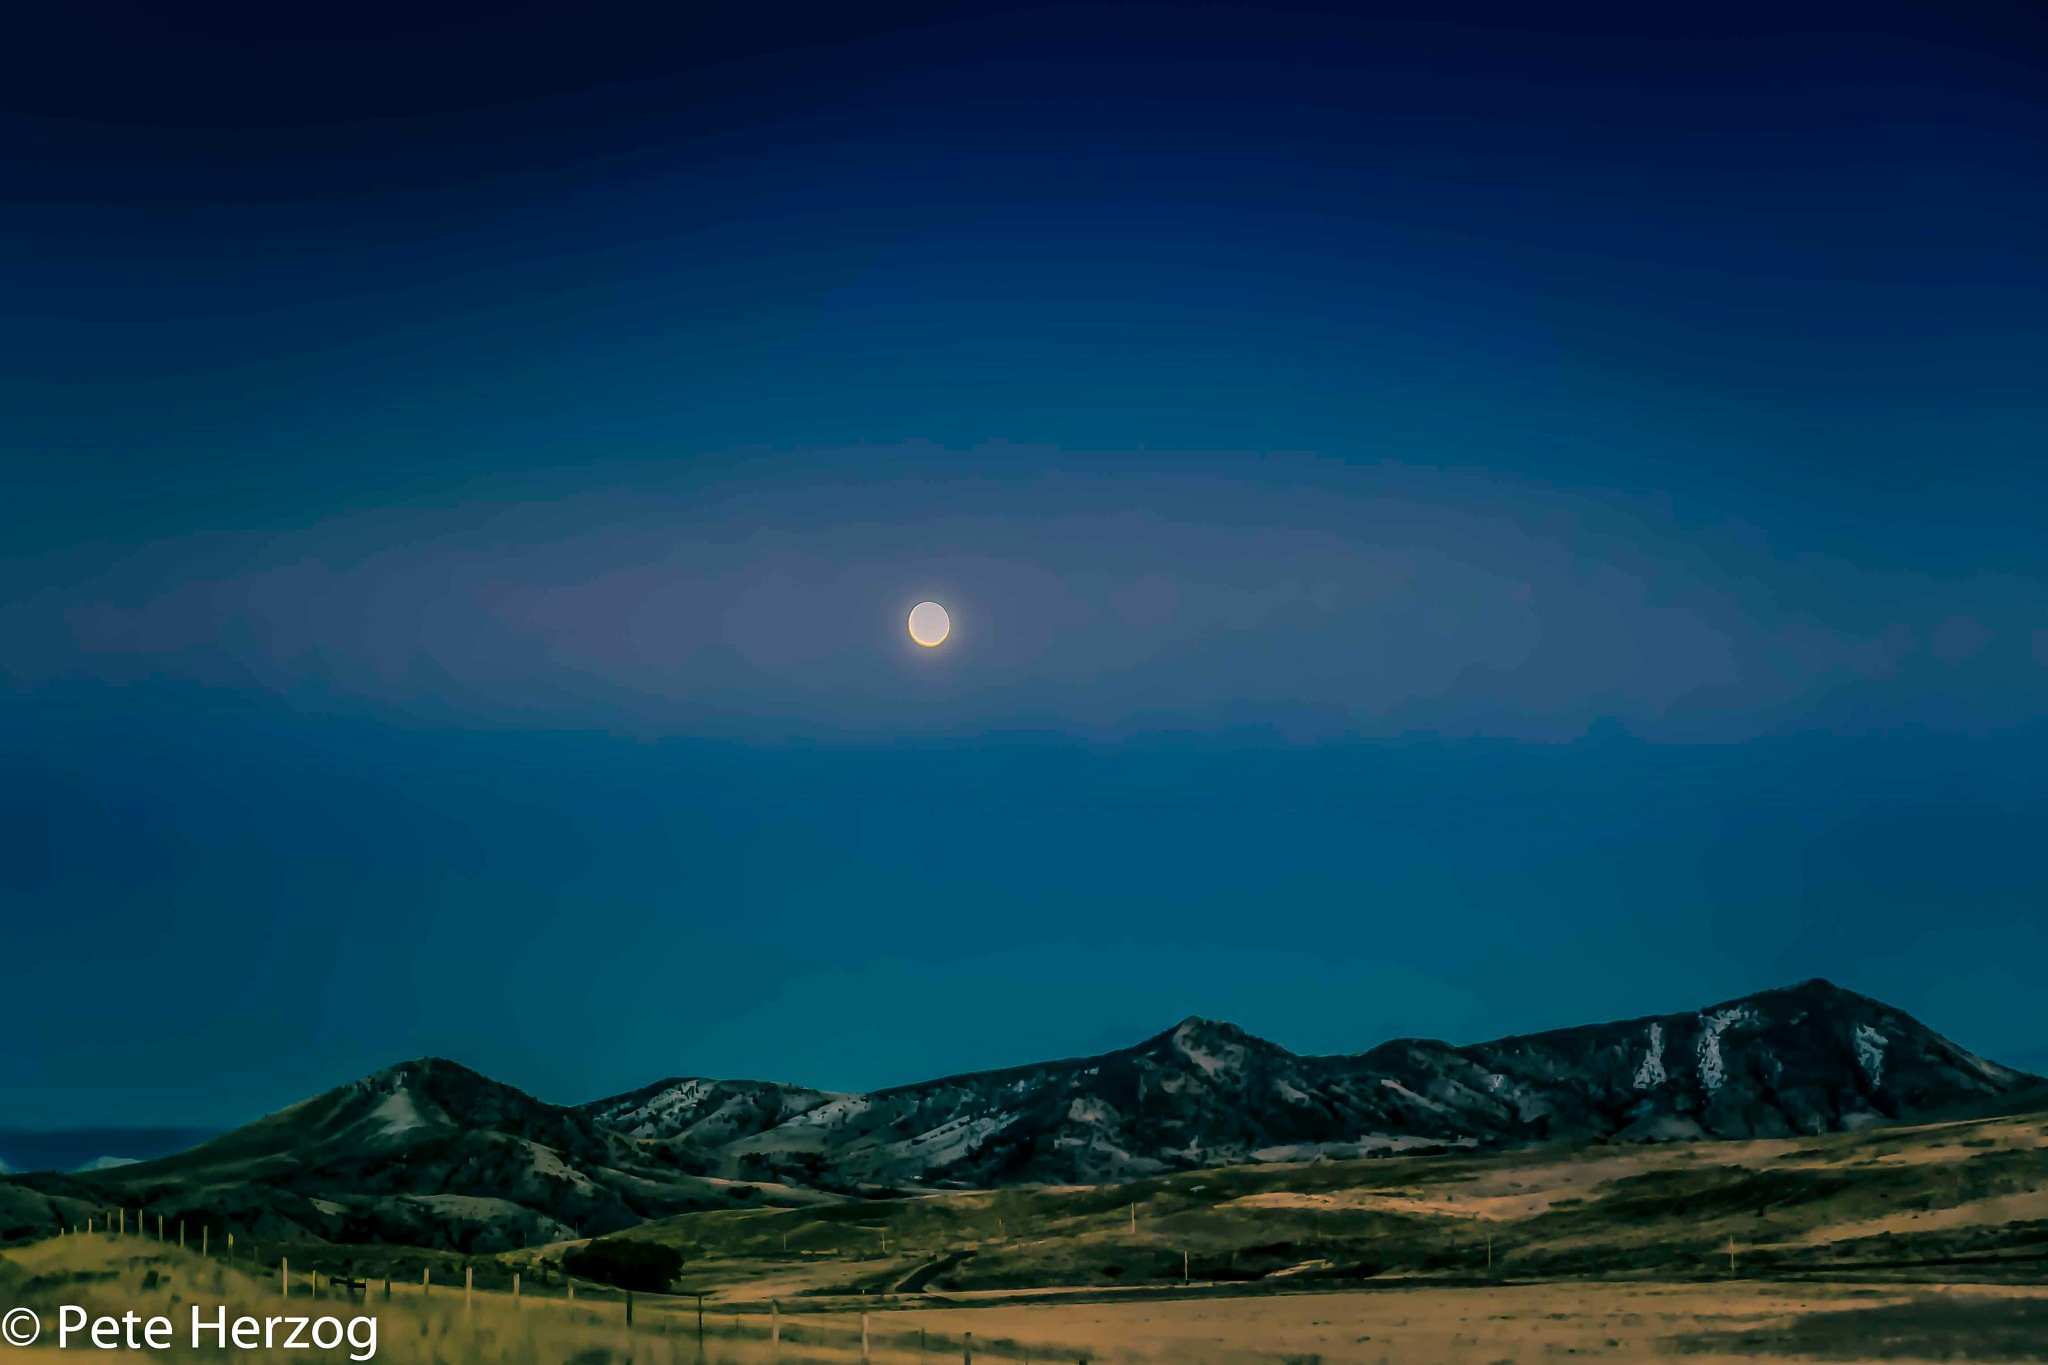 Moon over Mountains in Montana by peter.herzog.3323